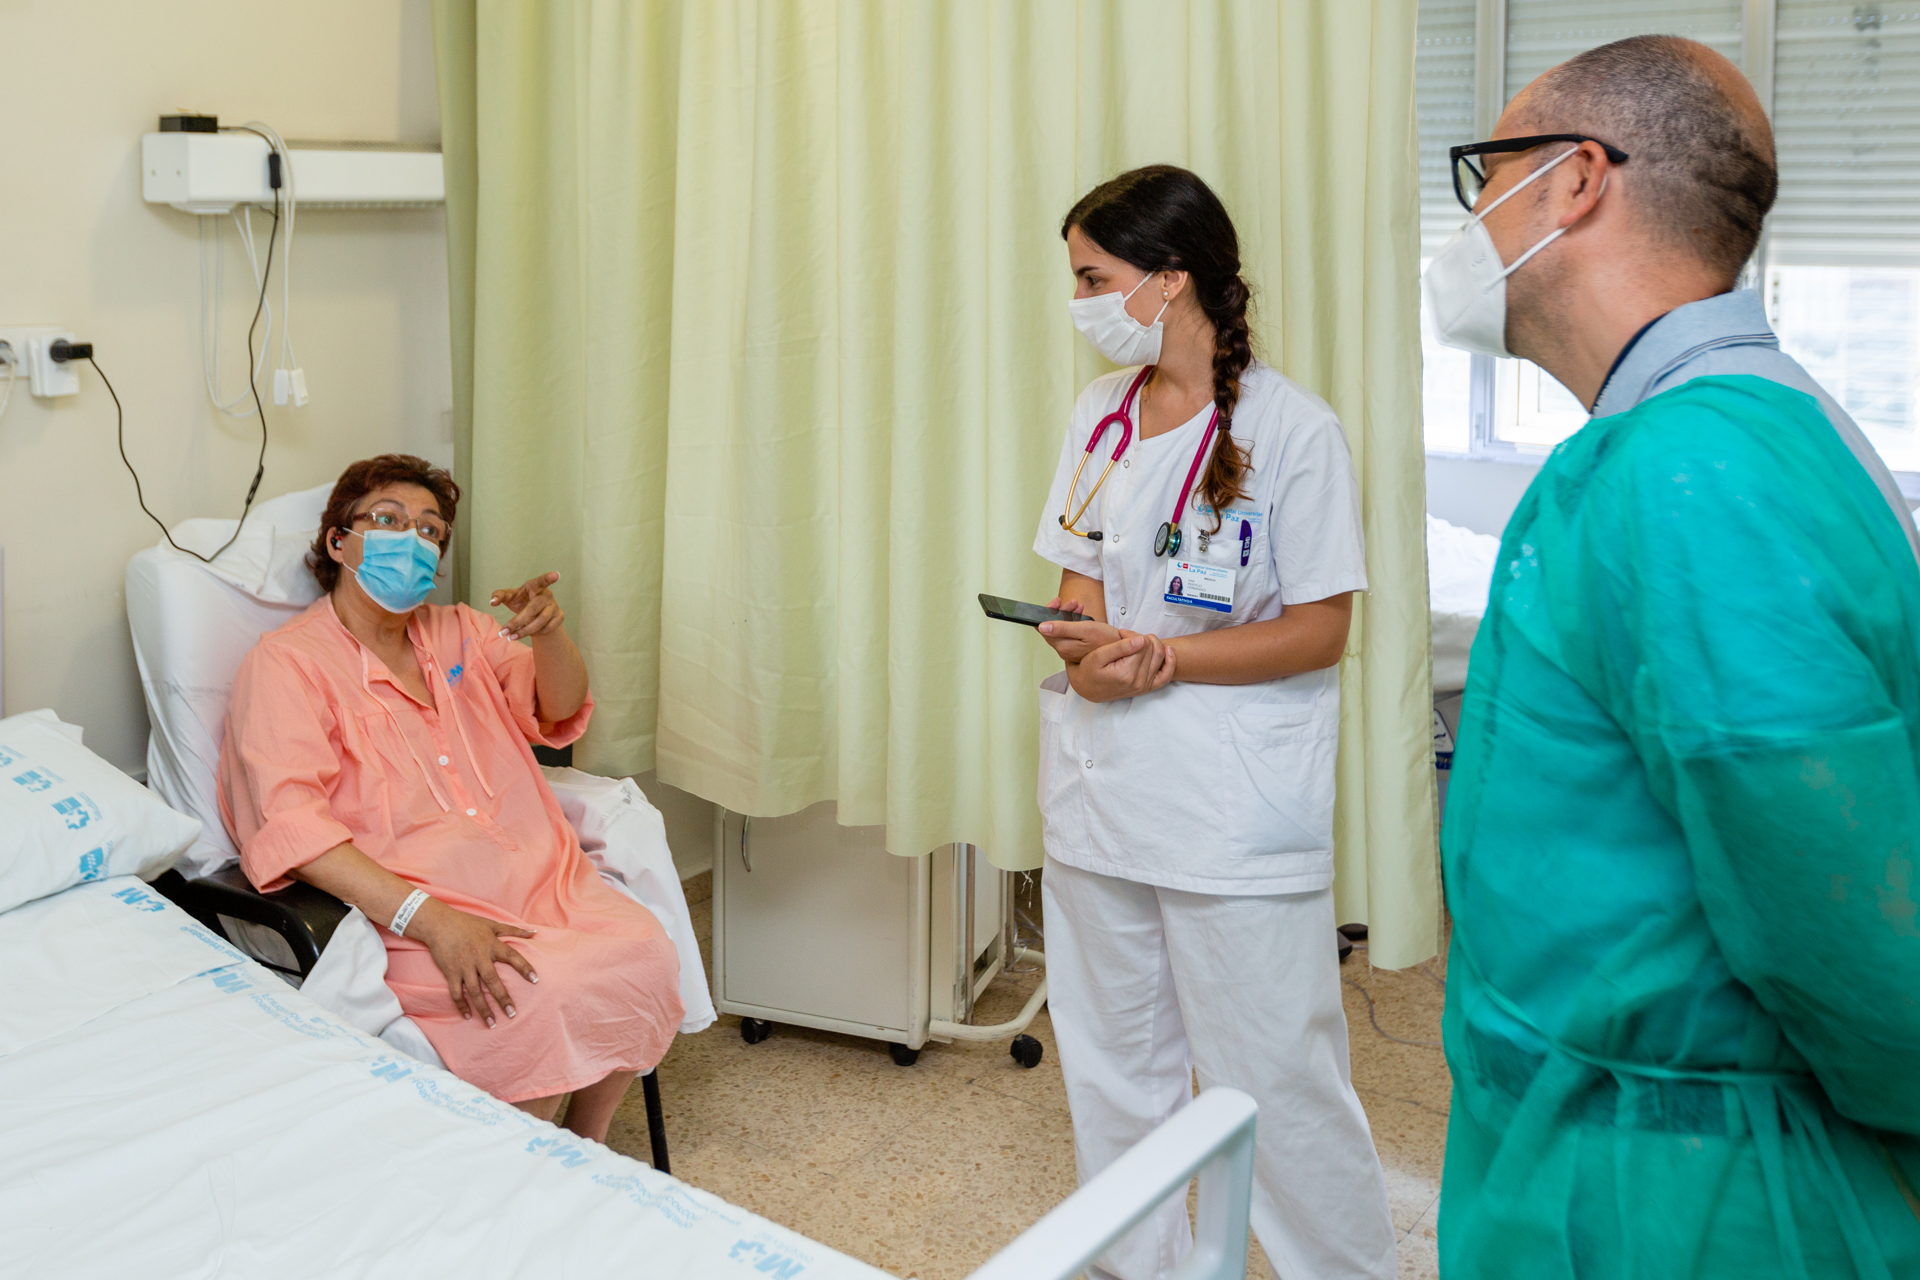 Medical personnel meet with a patient utilising Airbus' Smart Flying Hospital health monitoring system.